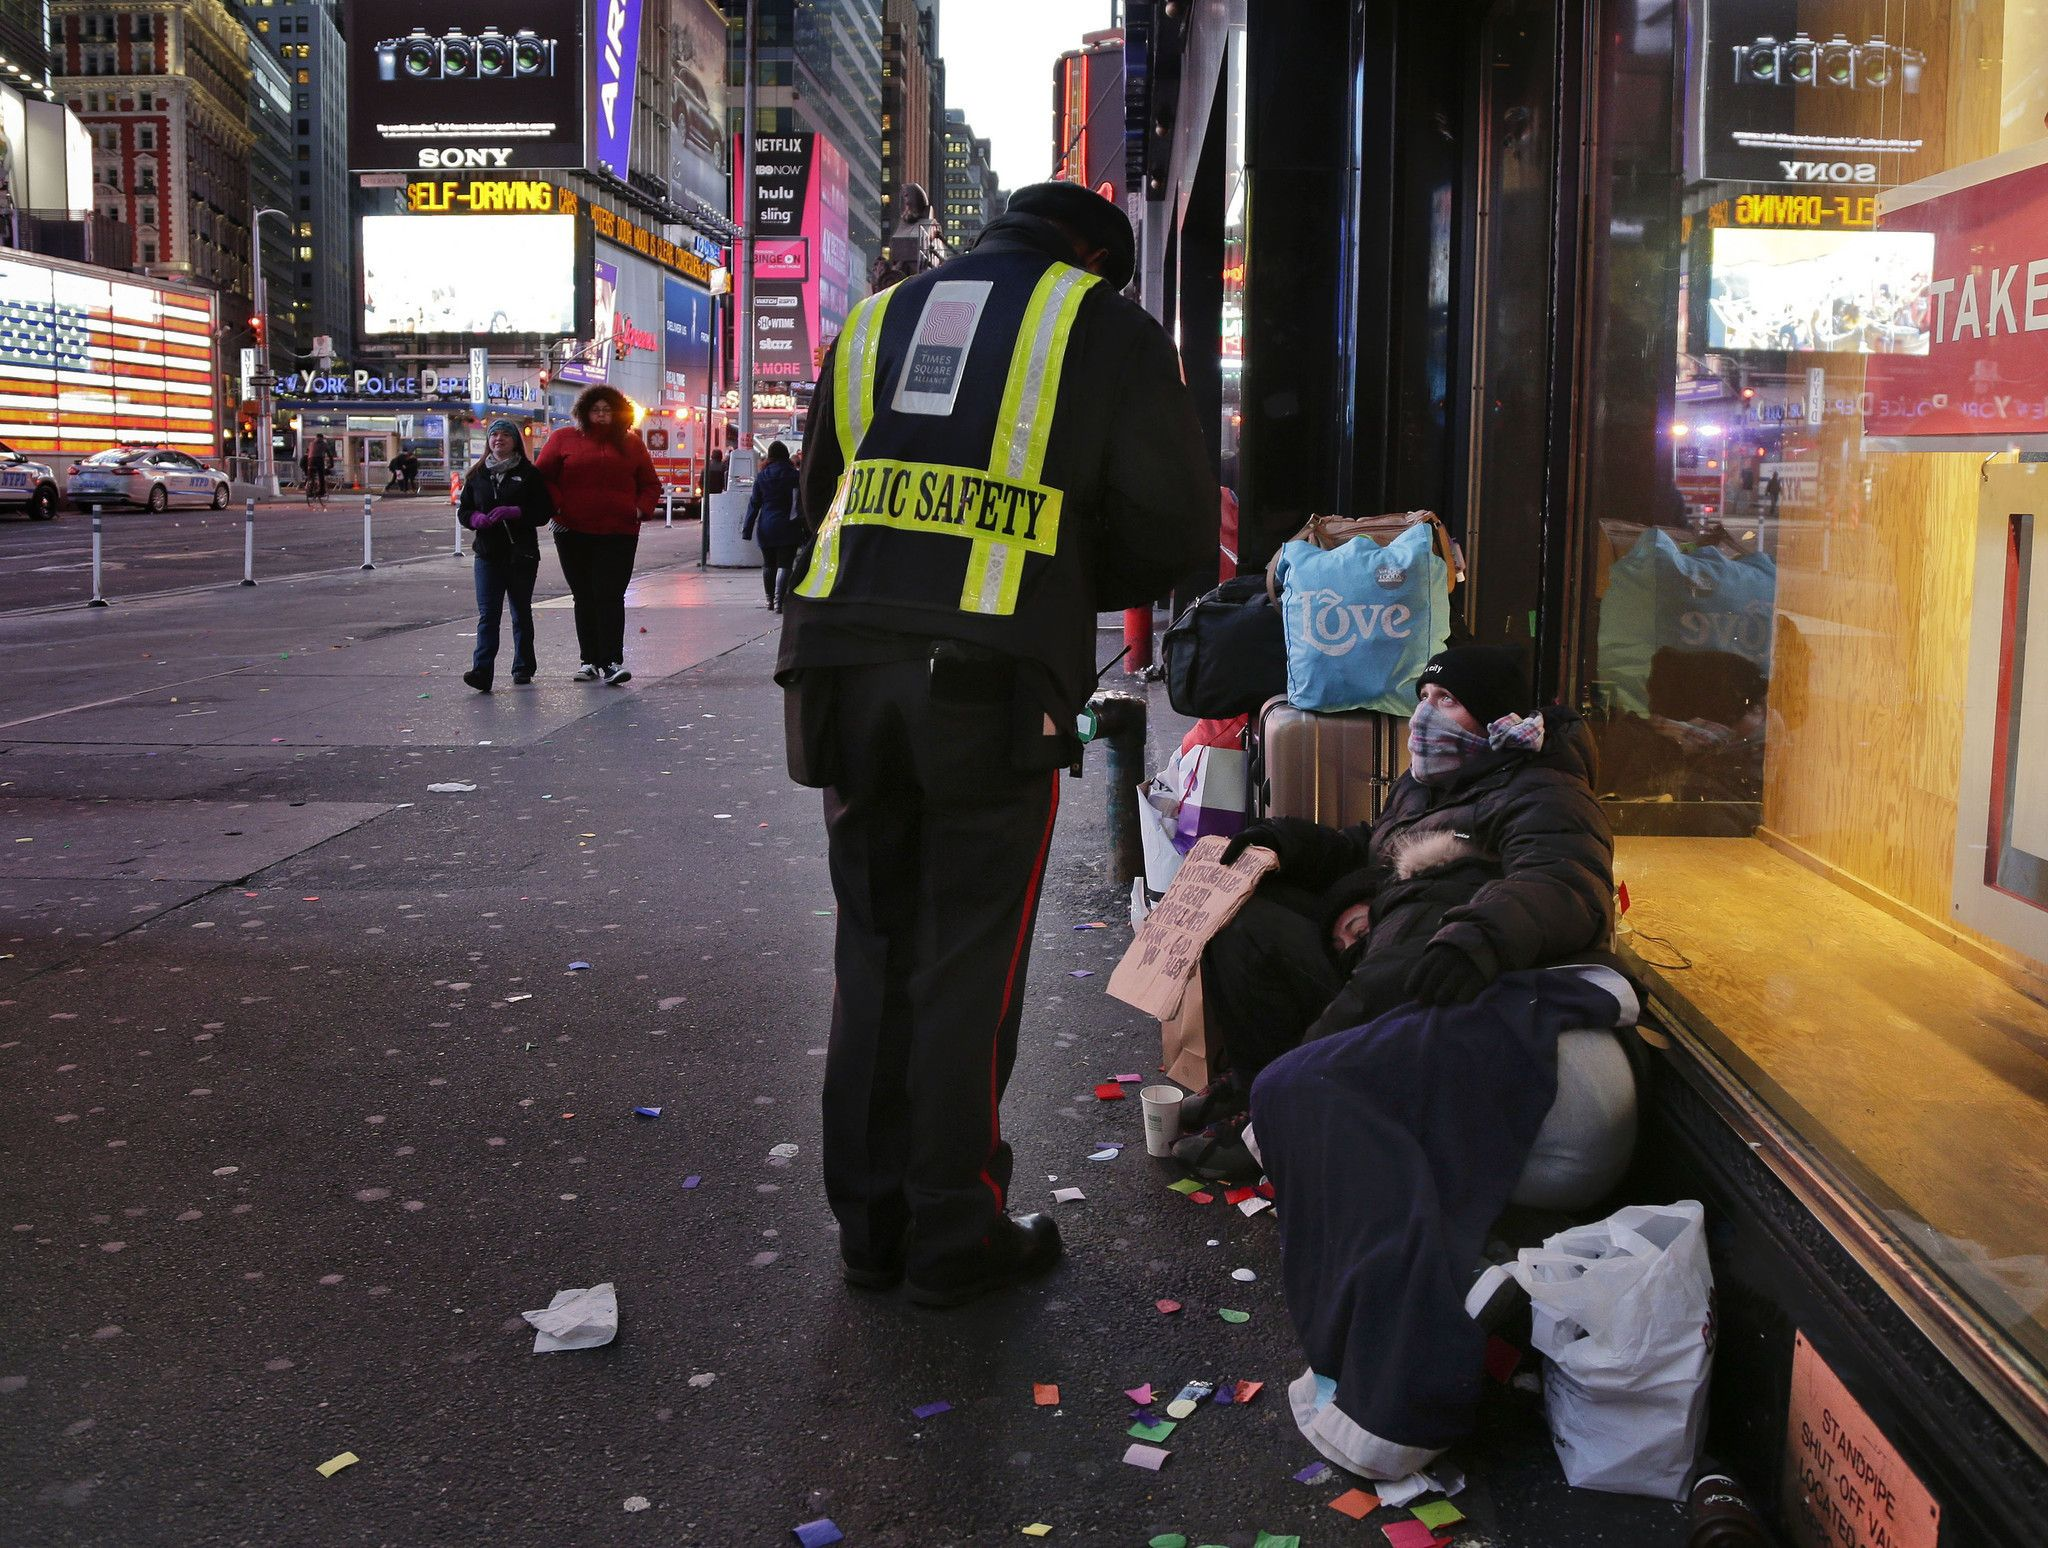 New York Plan To Force Homeless Into Shelters In Cold Weather Faces Backlash Homeless Homeless People New York